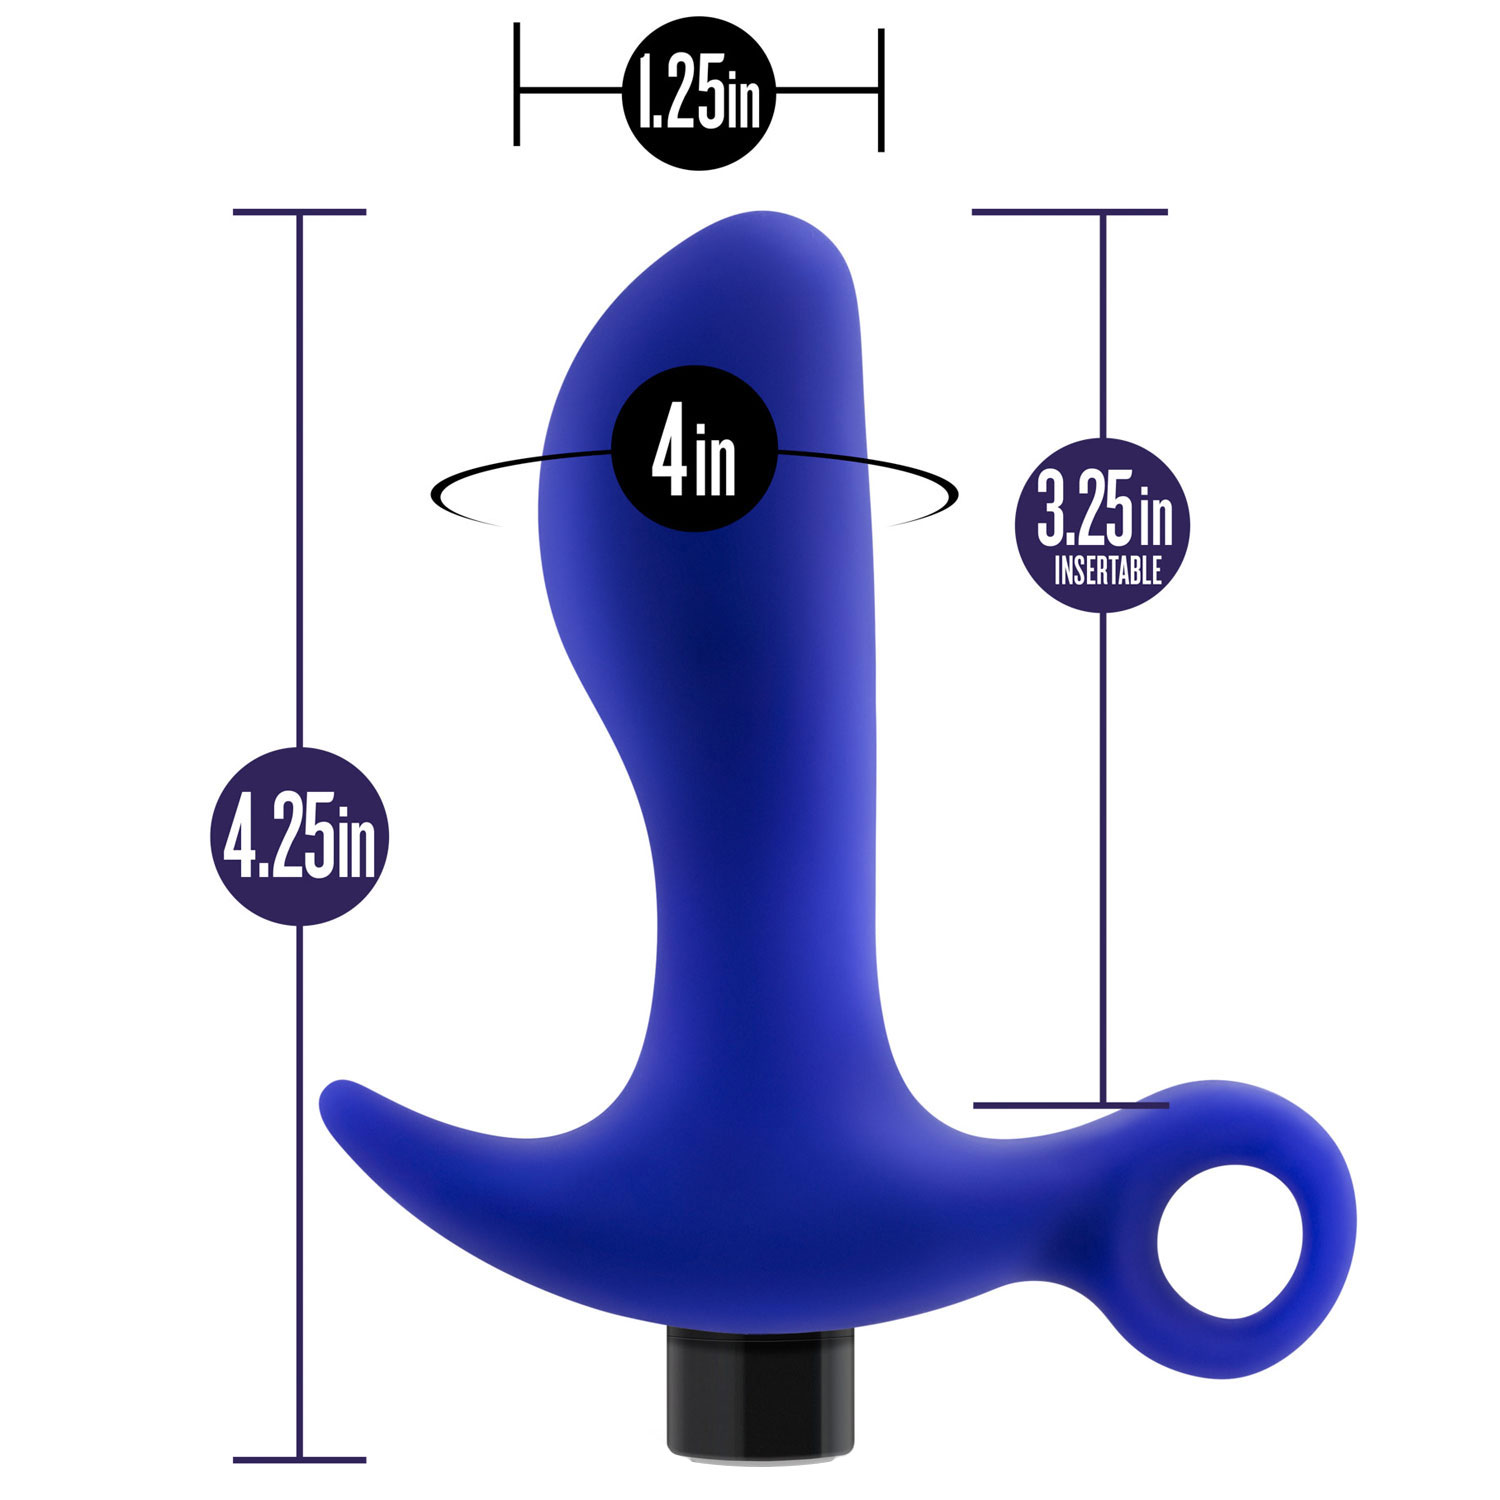 Performance Plus Supra Rechargeable Silicone Prostate Massager - Measurements